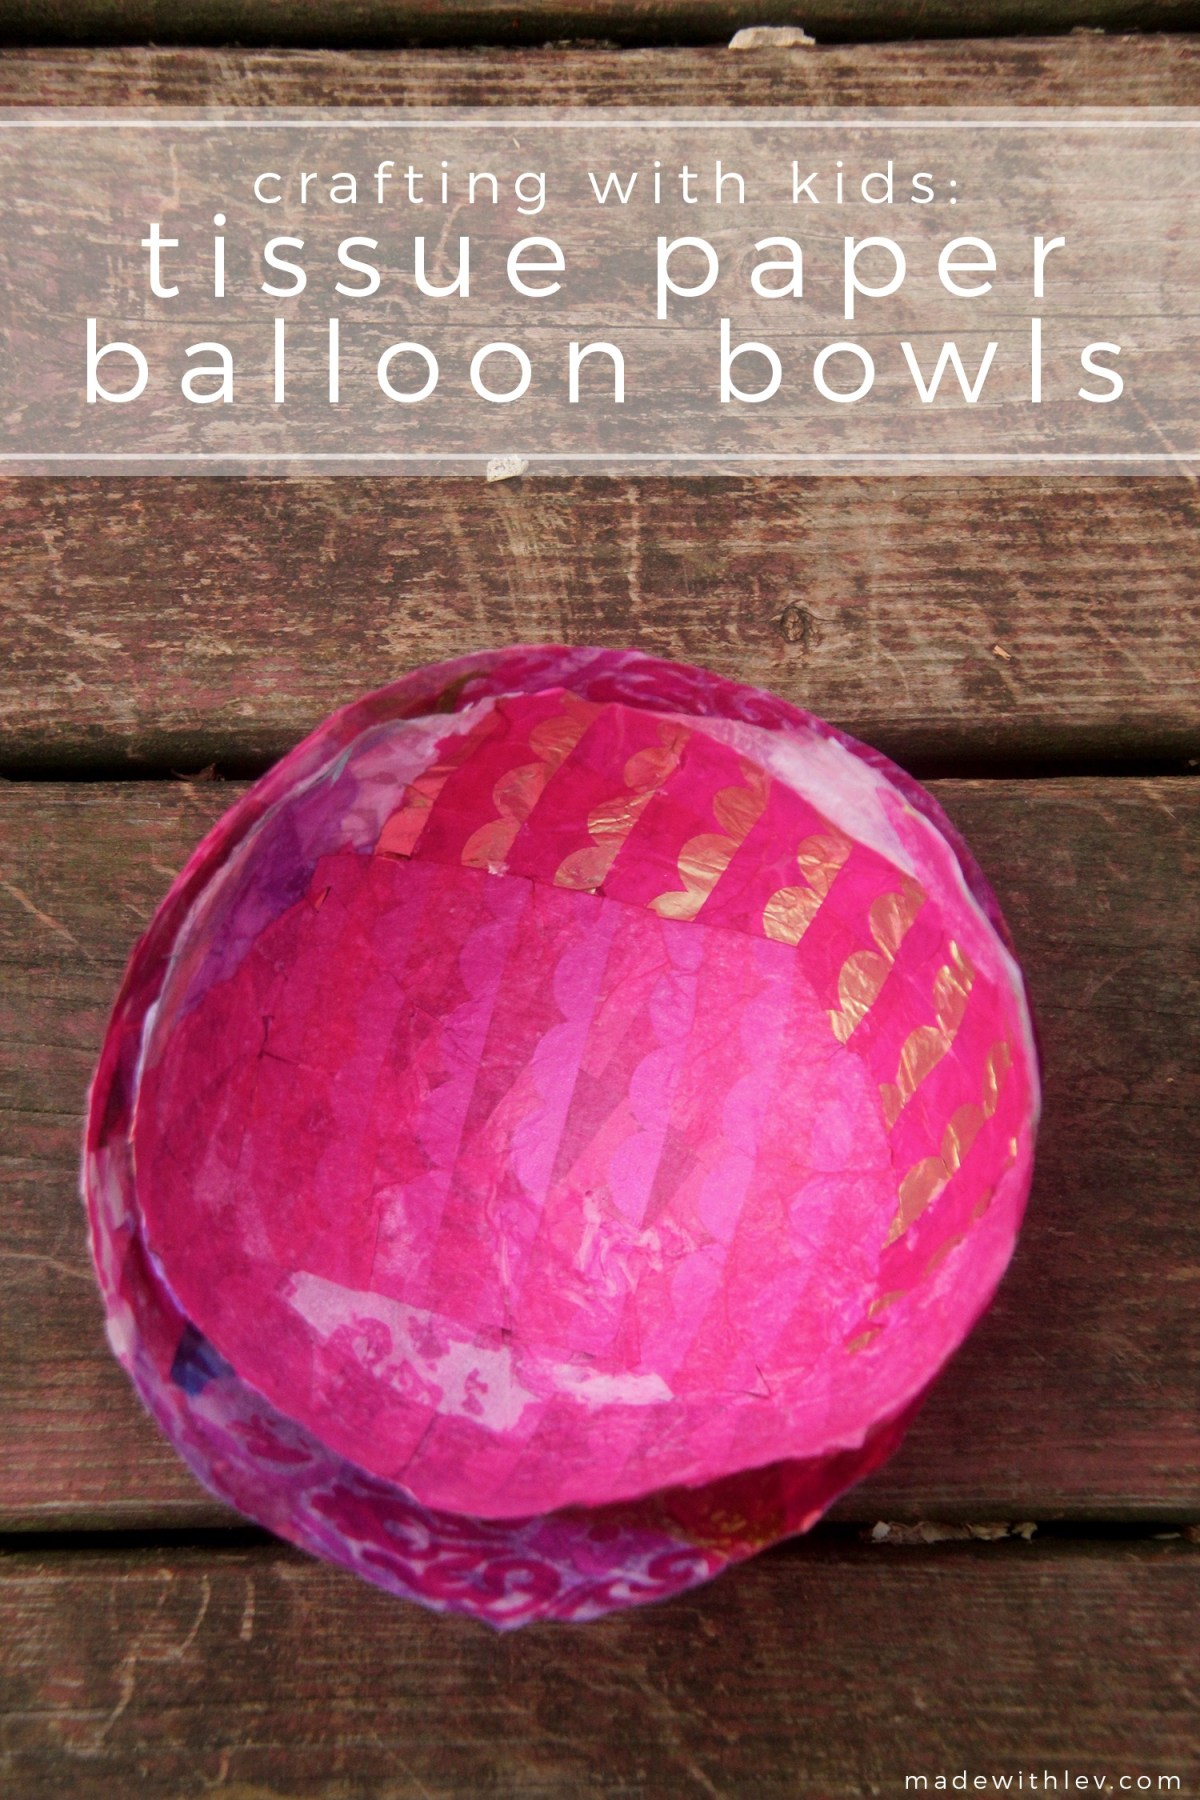 Crafting with Kids: Tissue Paper Balloon Bowls   #craftingwithkids #kidscrafts #balloonbowls #tissuepapercraft #tissuepaper #gluecrafts #familycraft #craftideas #craftproject